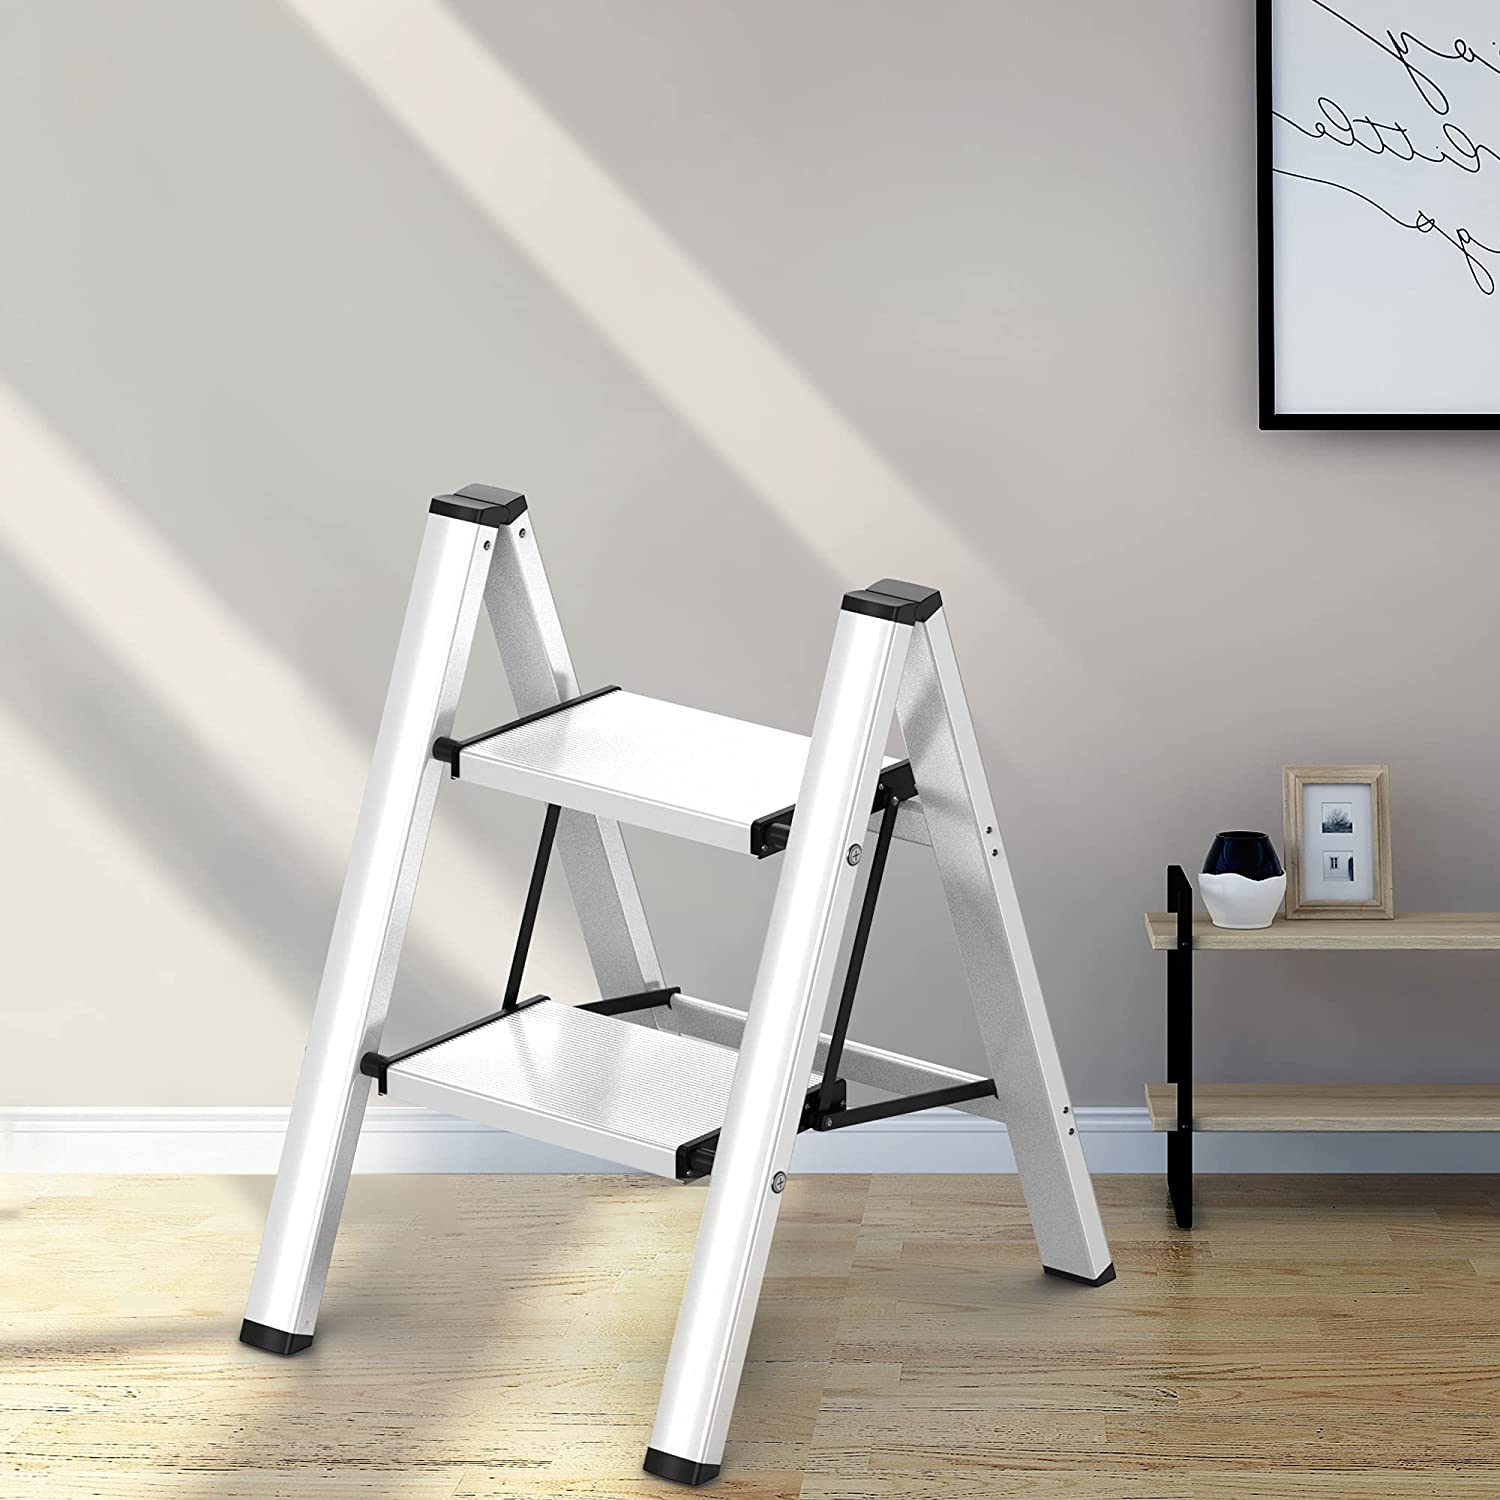 2 Steps Ladder Anti-Slip Foldable Silver Aluminum Lightweight and Wide Pedal for Home and Kitchen Space Saving - -